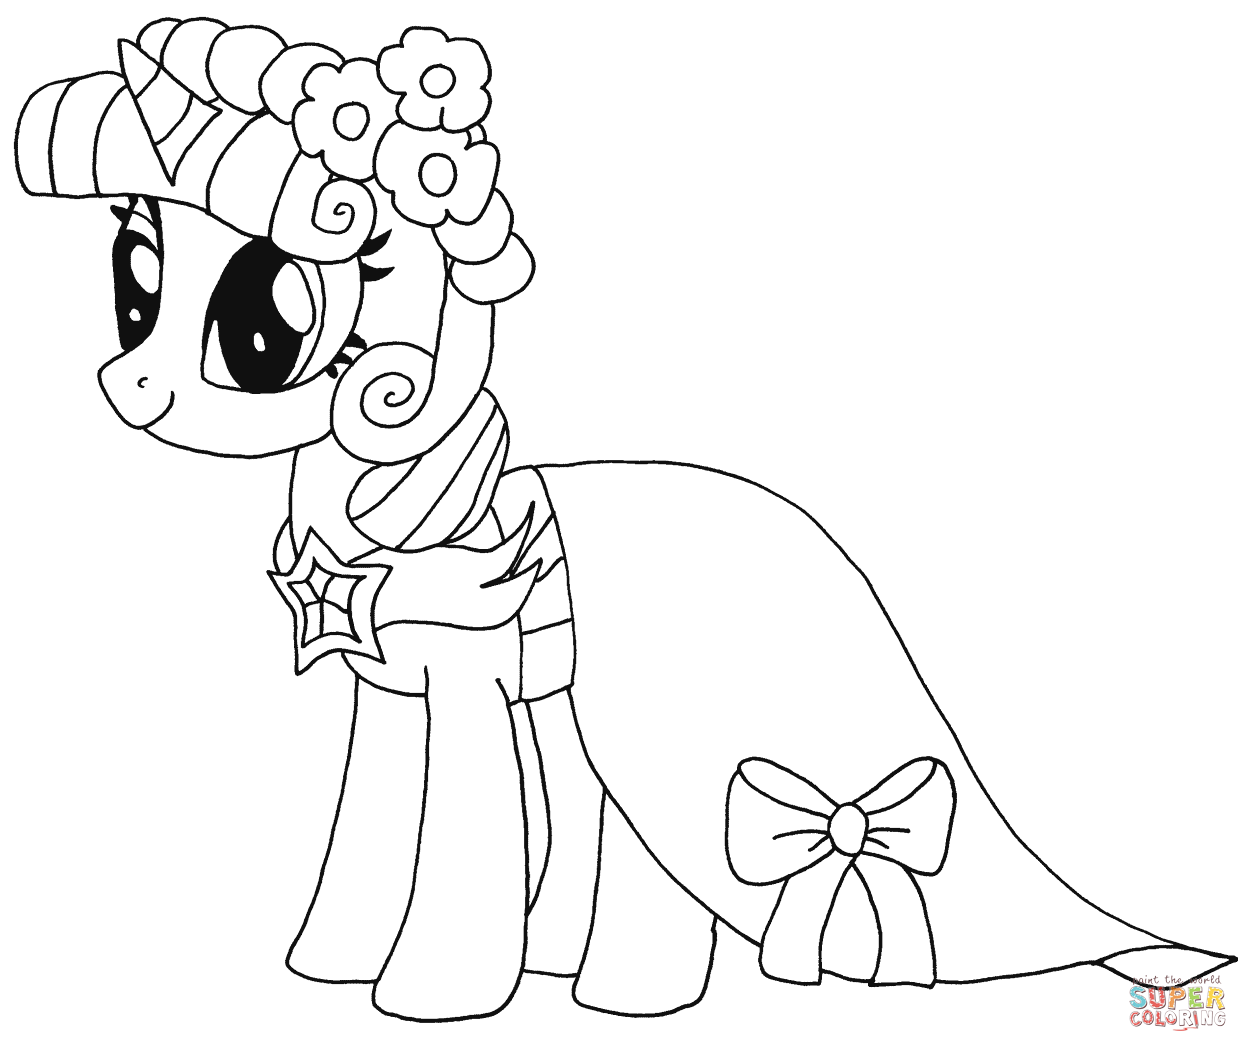 my little pony coloring pages twilight sparkle my little pony twilight sparkle coloring pages projektek pony my sparkle twilight coloring pages little